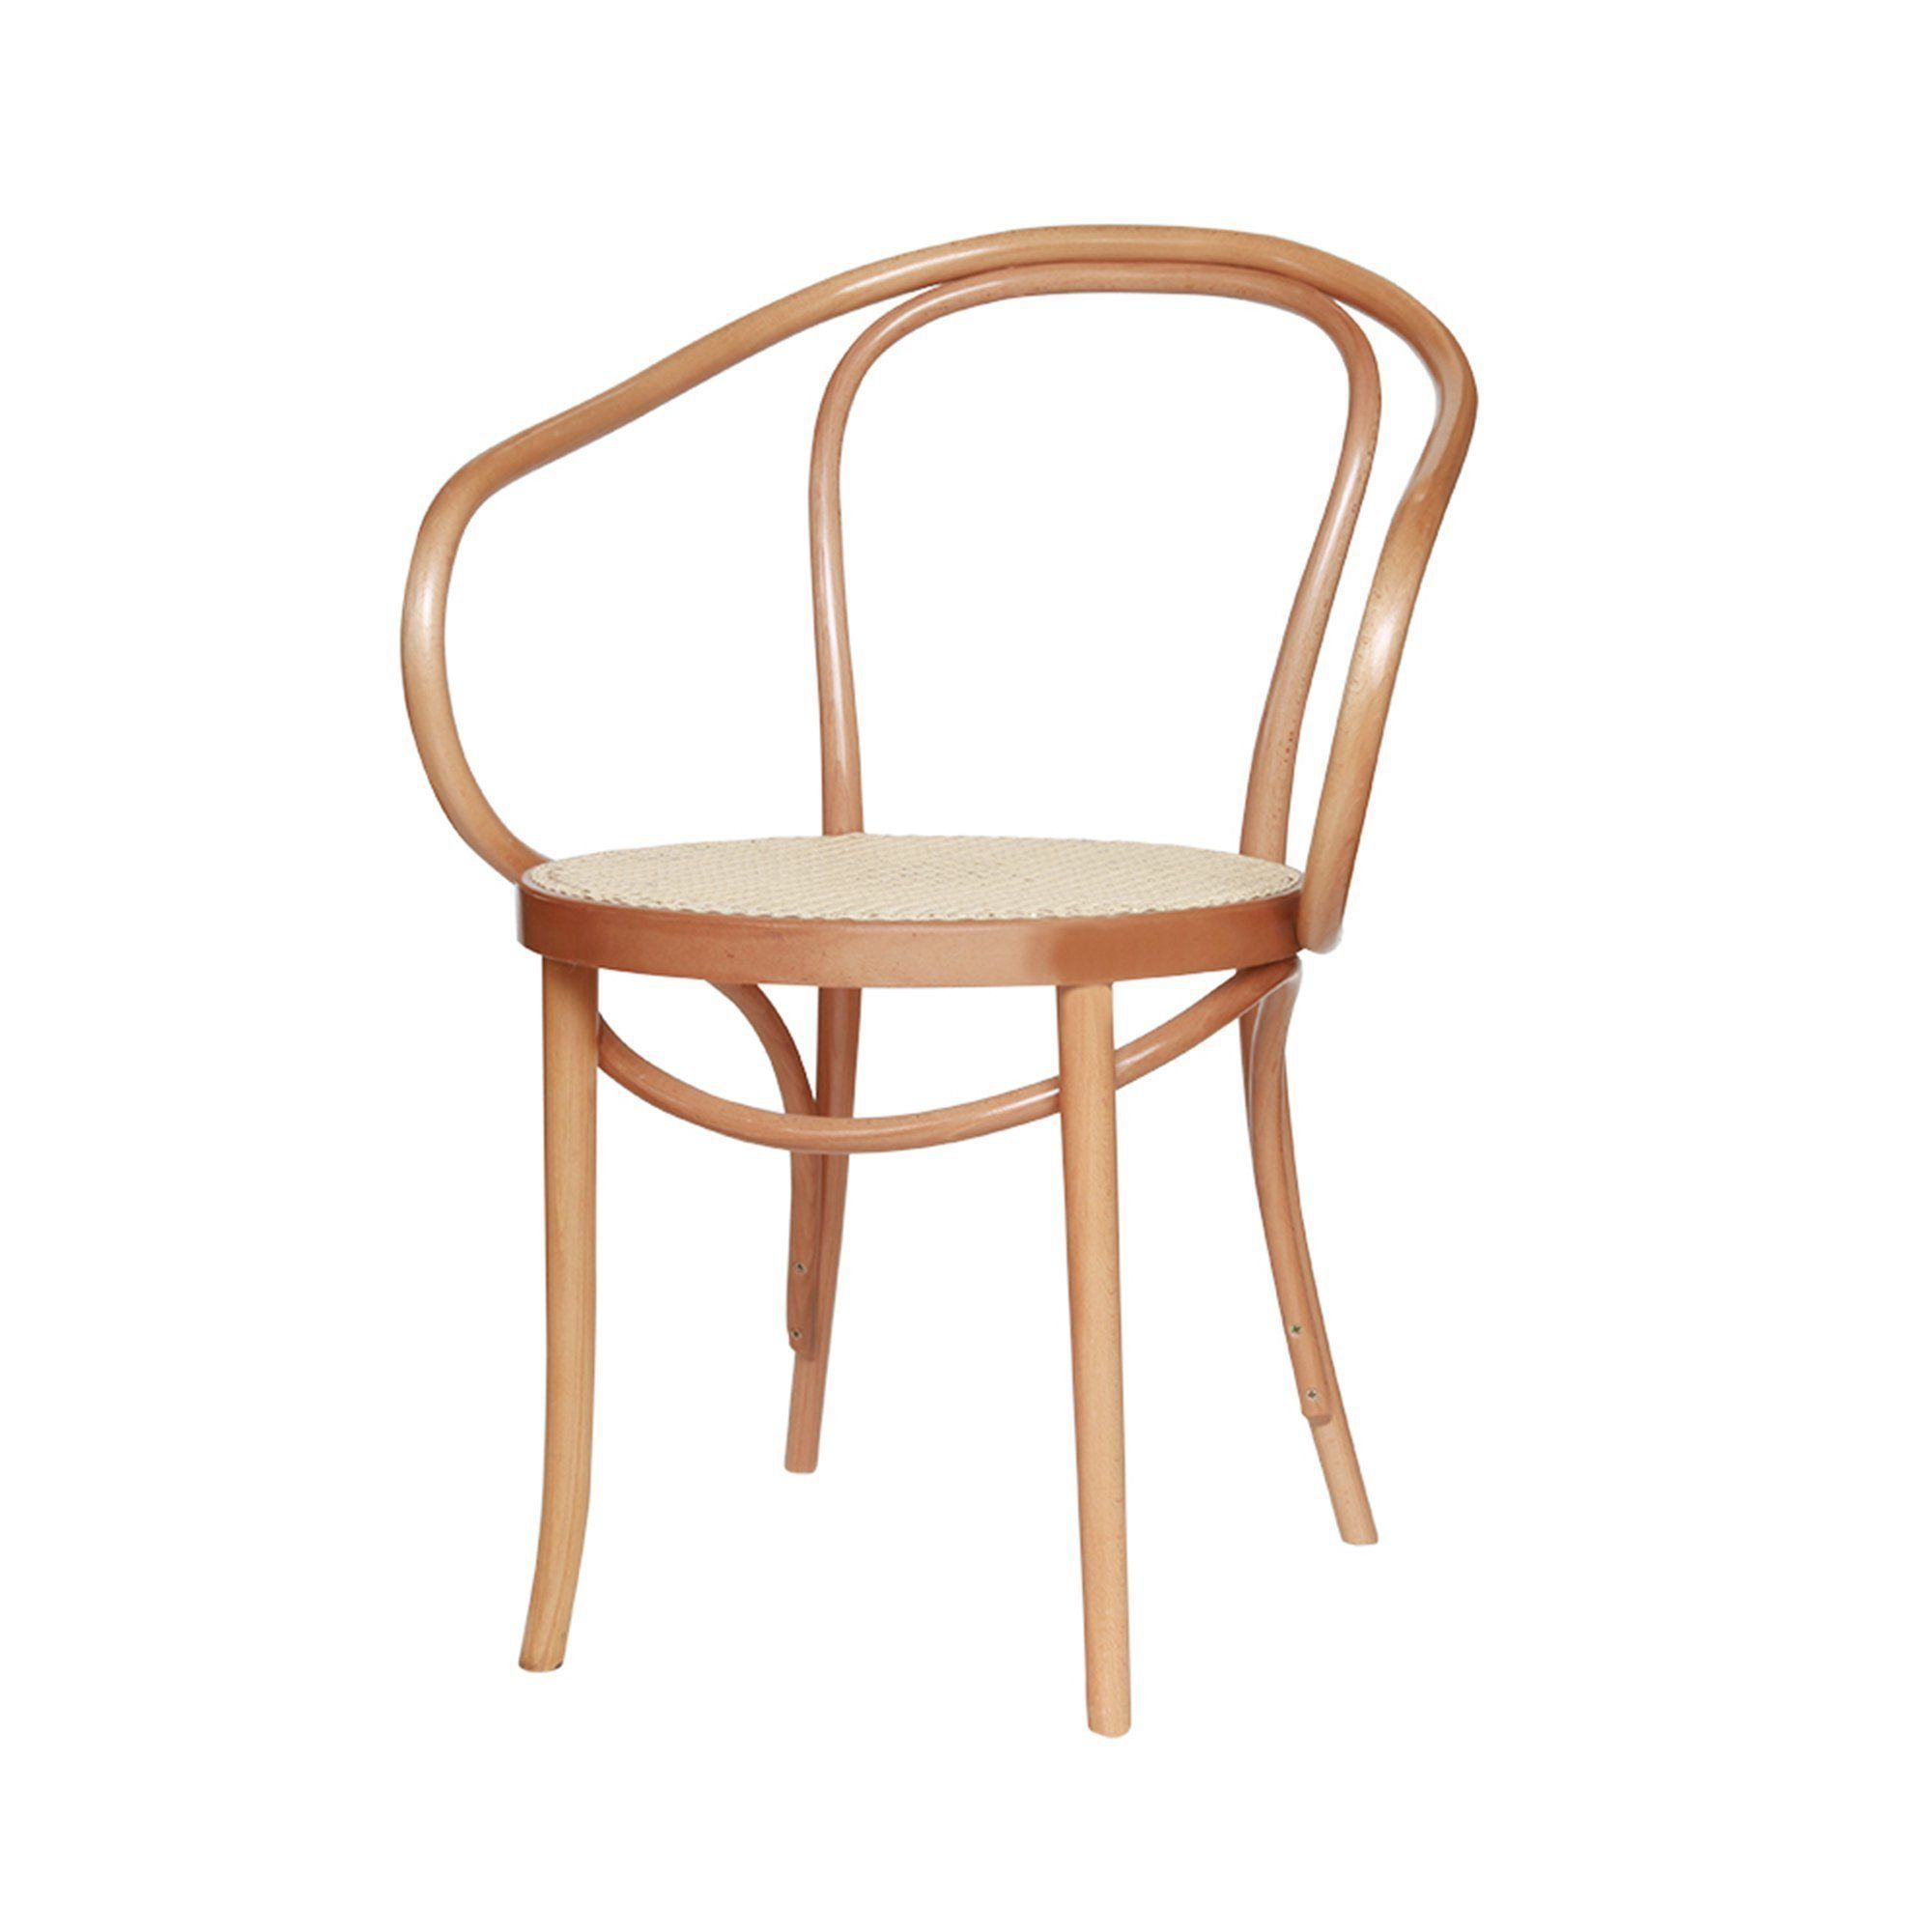 Le Corbusier Dining Chair Ply Seat Dining chair design